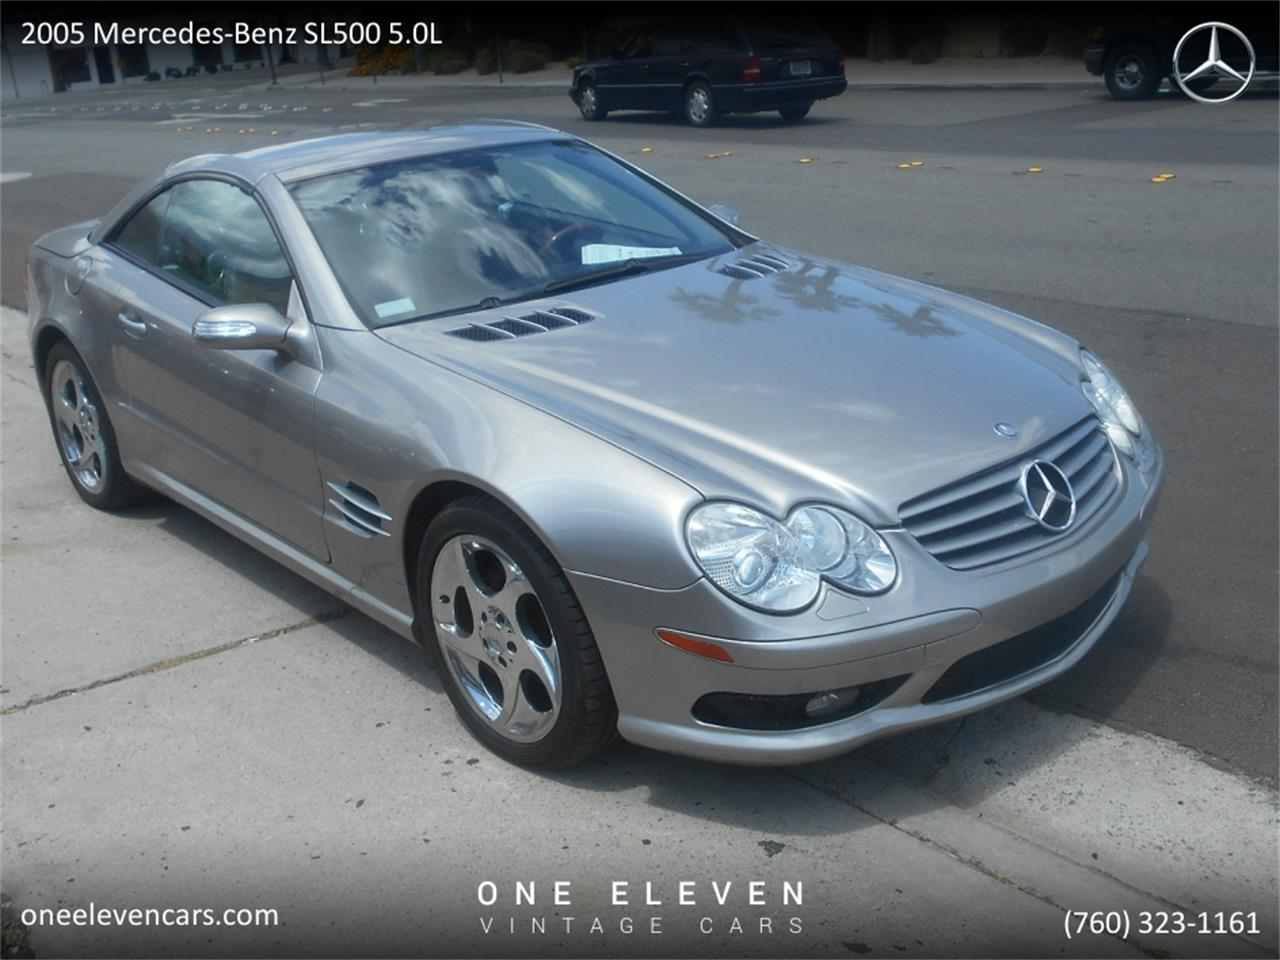 for sale 2005 mercedes-benz sl-class in palm springs, california cars - palm springs, ca at geebo